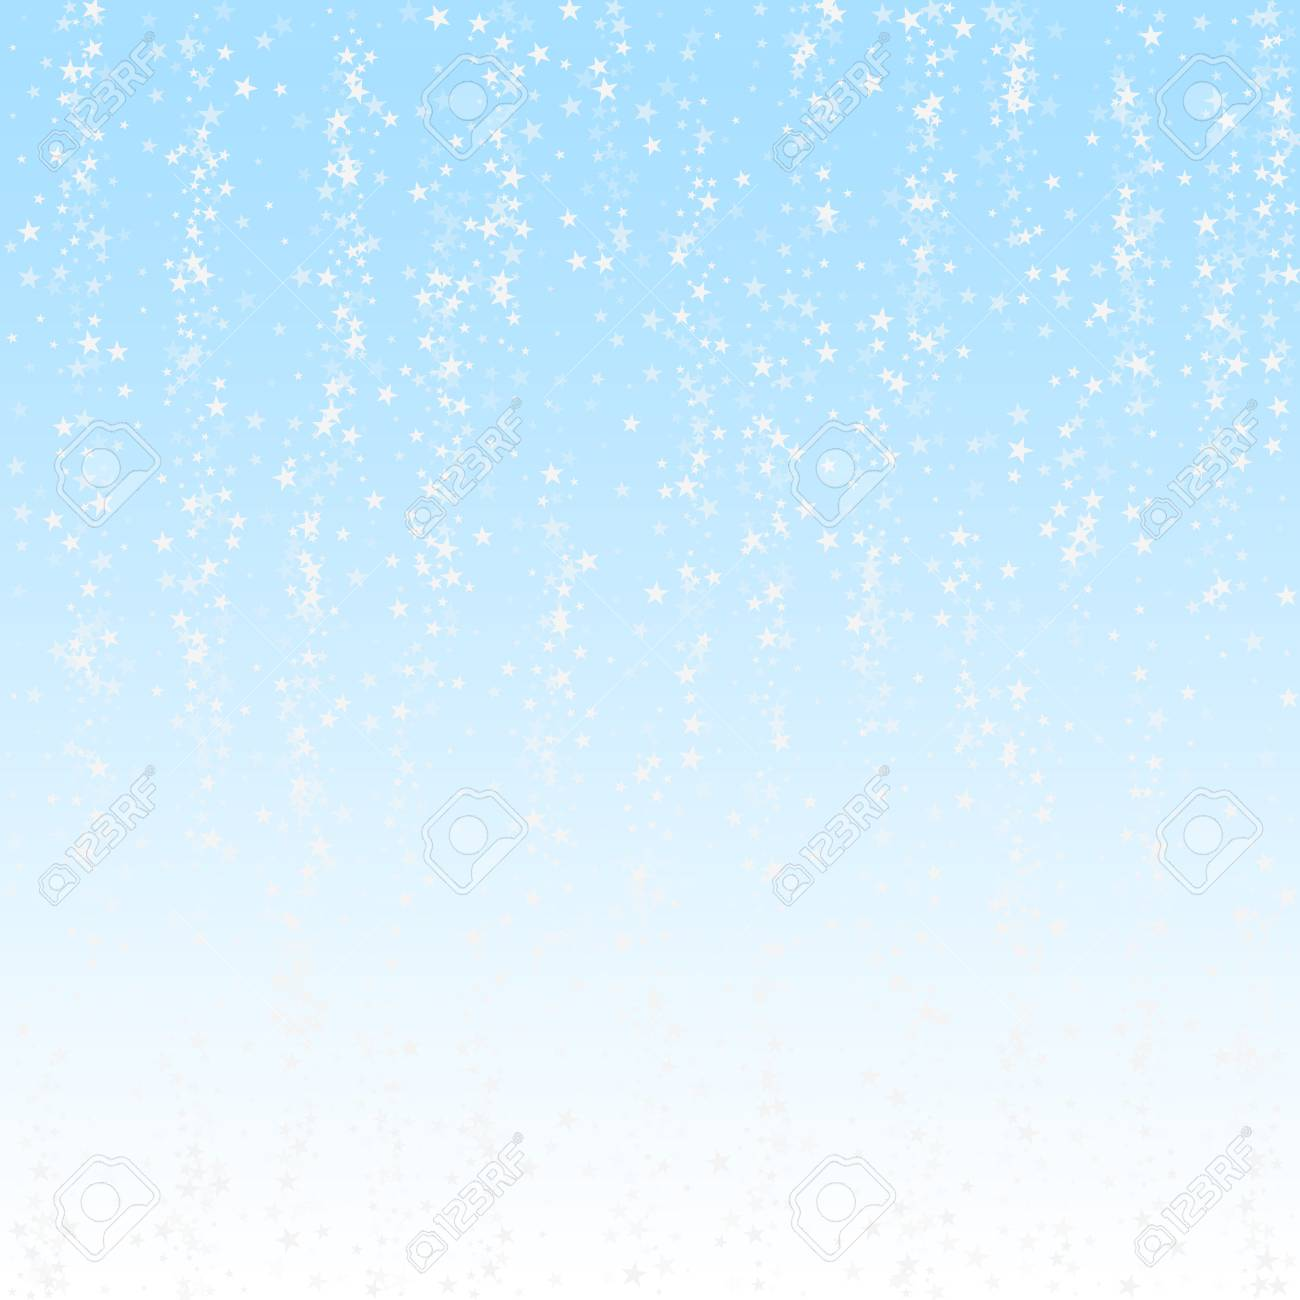 Amazing falling stars Christmas background. Subtle flying snow flakes and stars on winter sky background. Awesome winter silver snowflake overlay template. Fabulous vector illustration. - 126654834